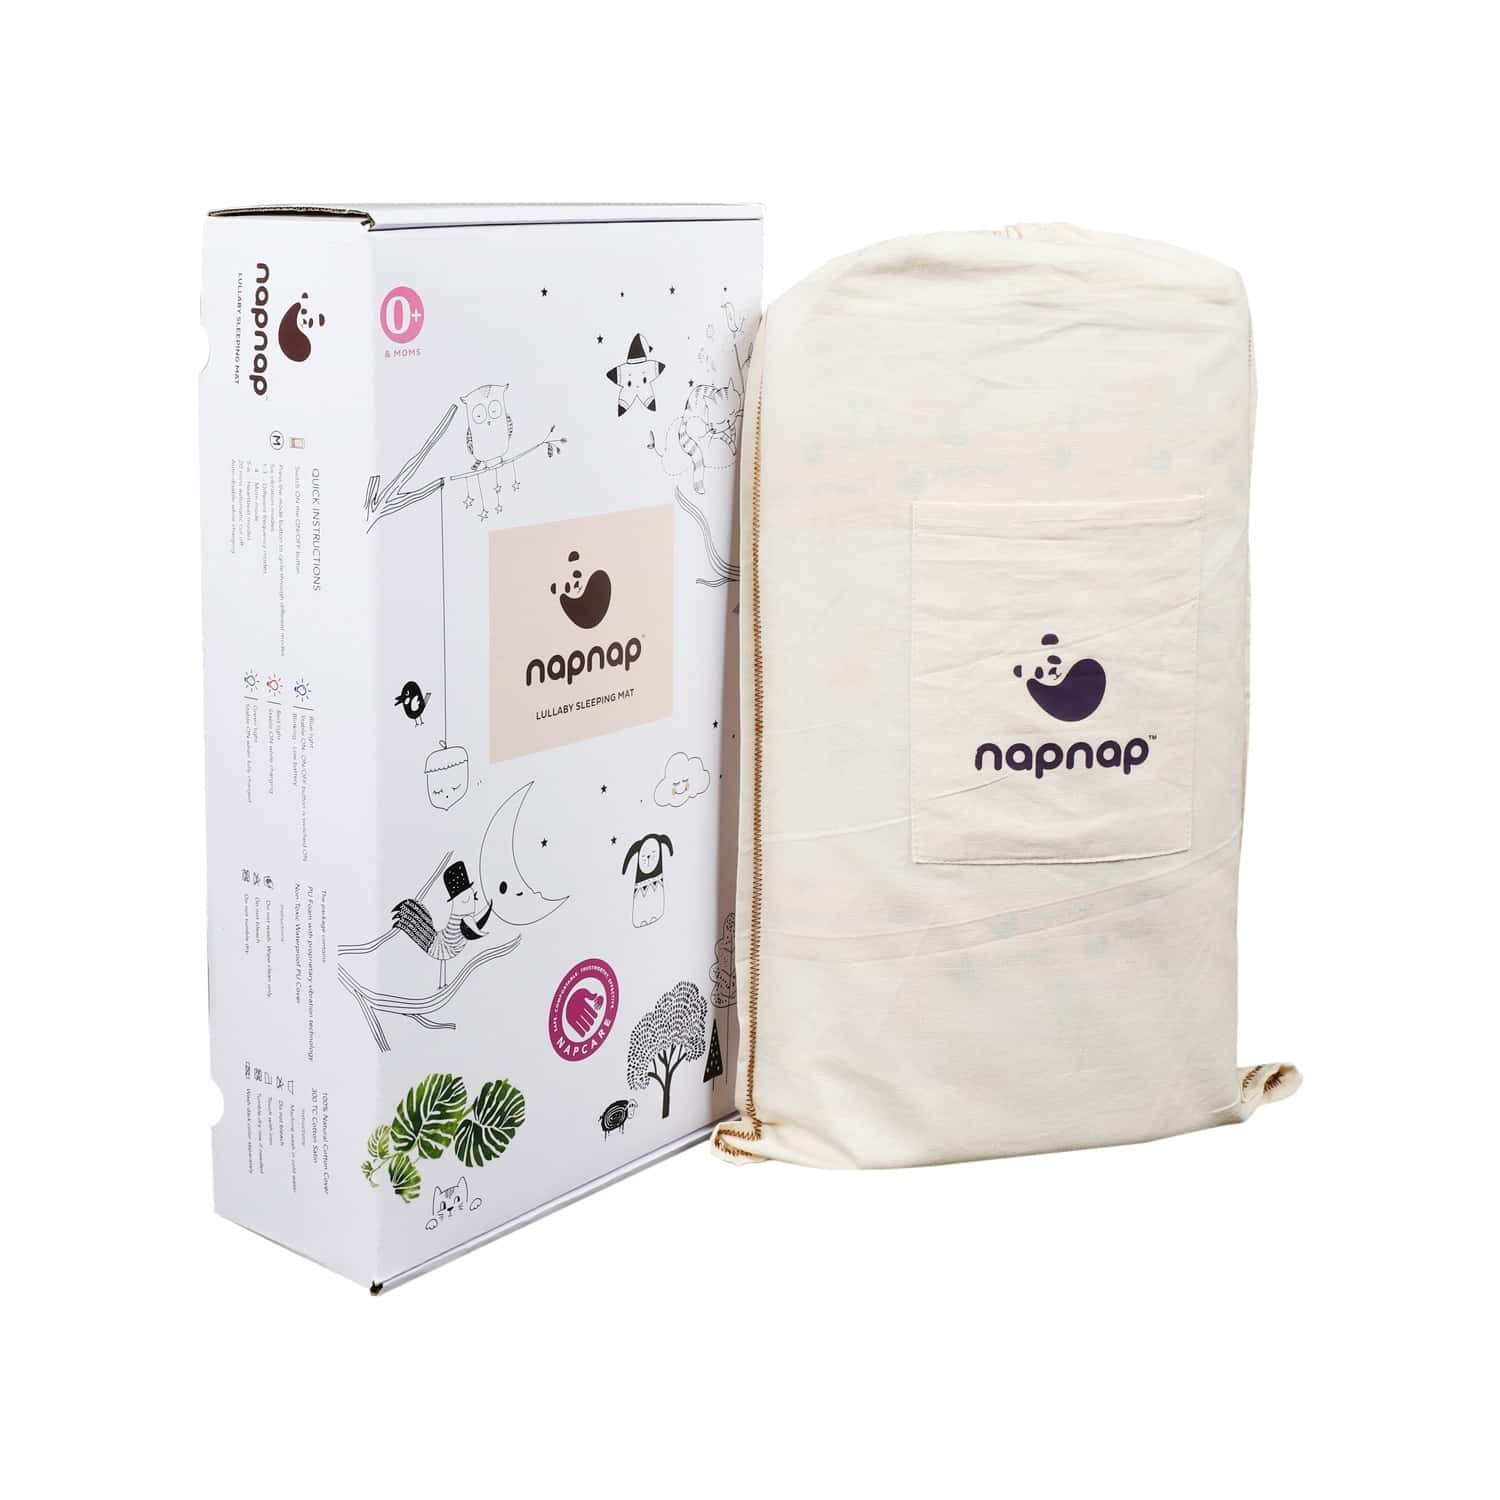 Napnap Portable Soothing Mat For New-borns And New Moms.- Aquamarine